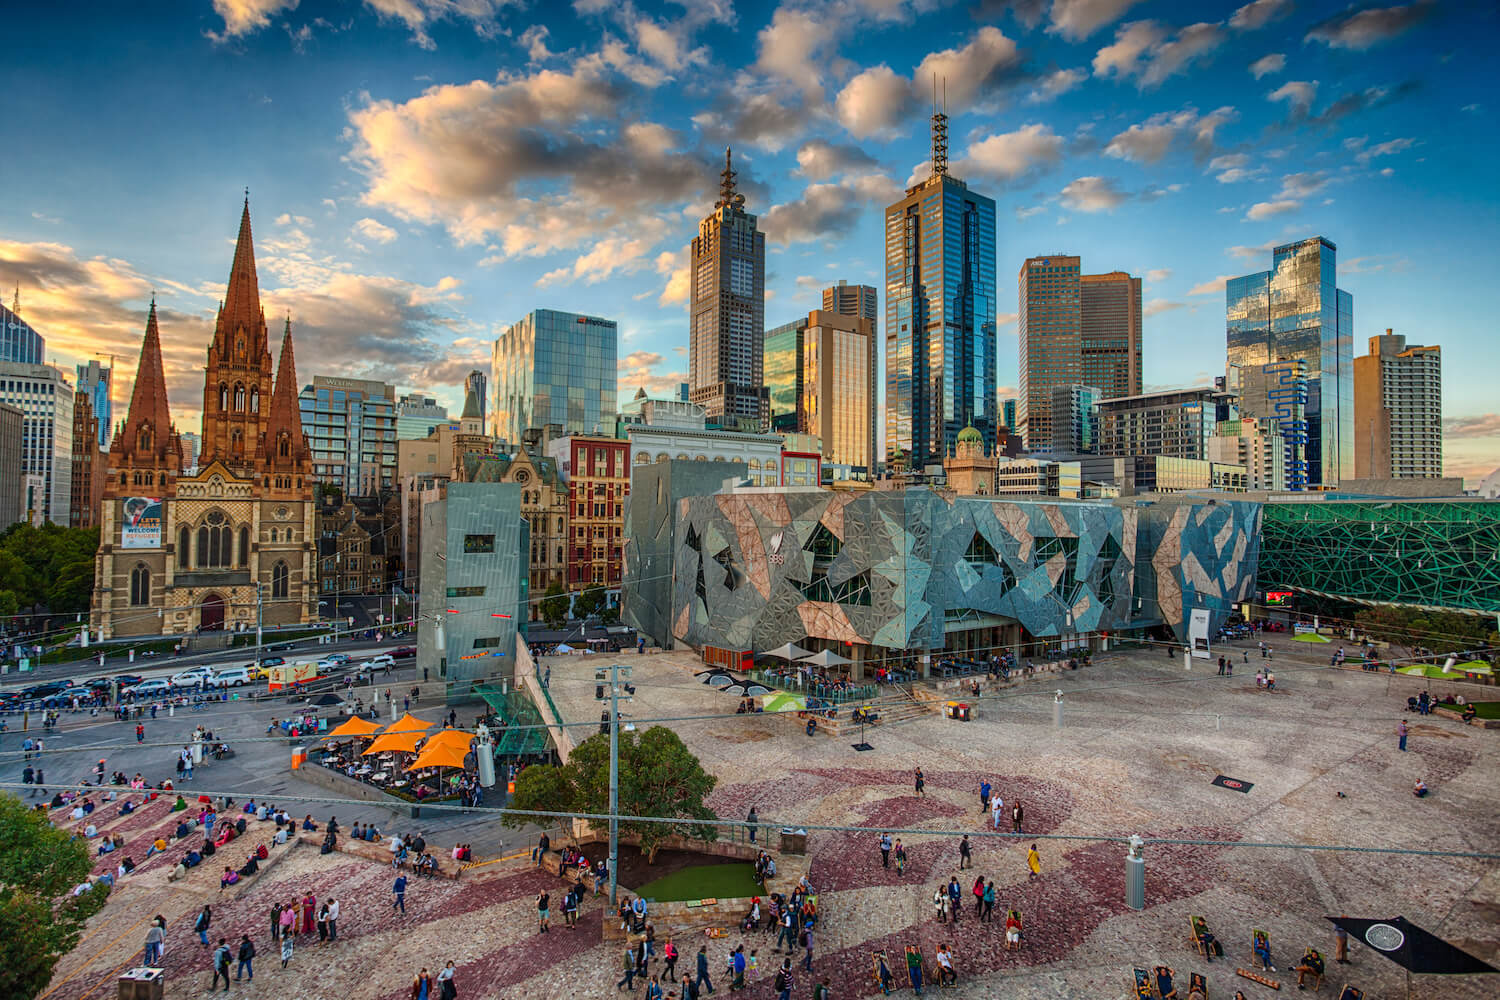 Fed Square is hosting an epic competition to help kickstart your music career